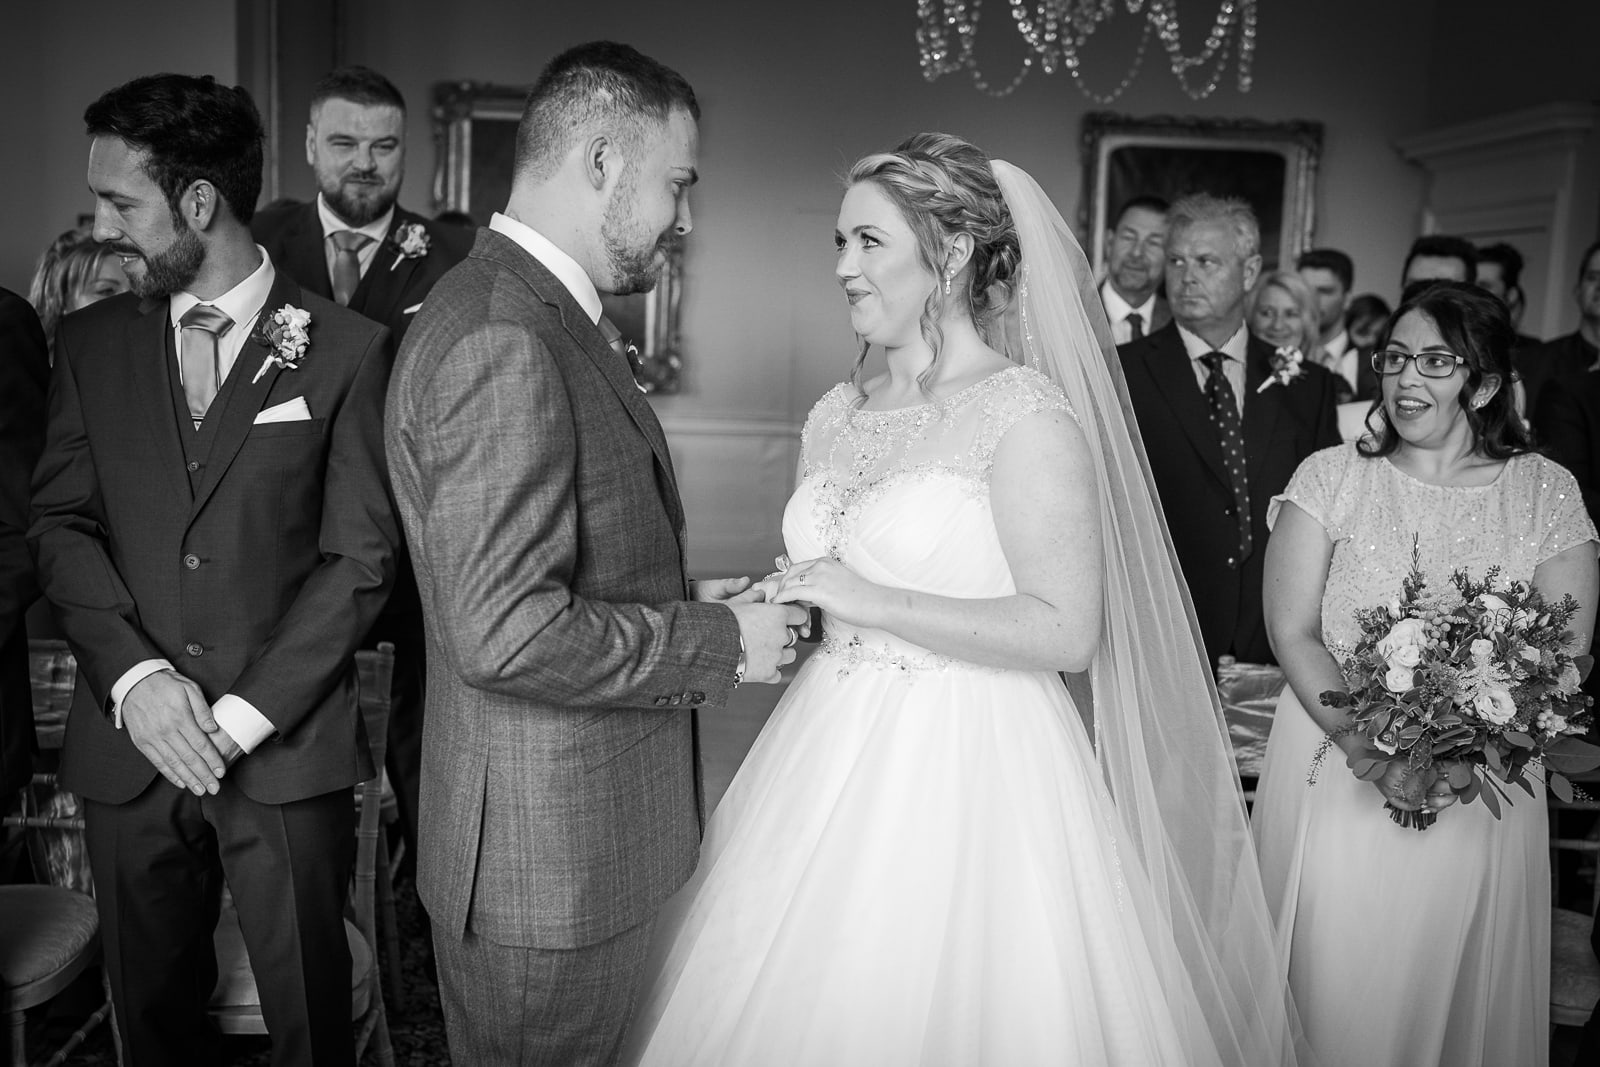 Norwood Park Wedding Photography - Bride and Groom exchanging rings during the wedding ceremony